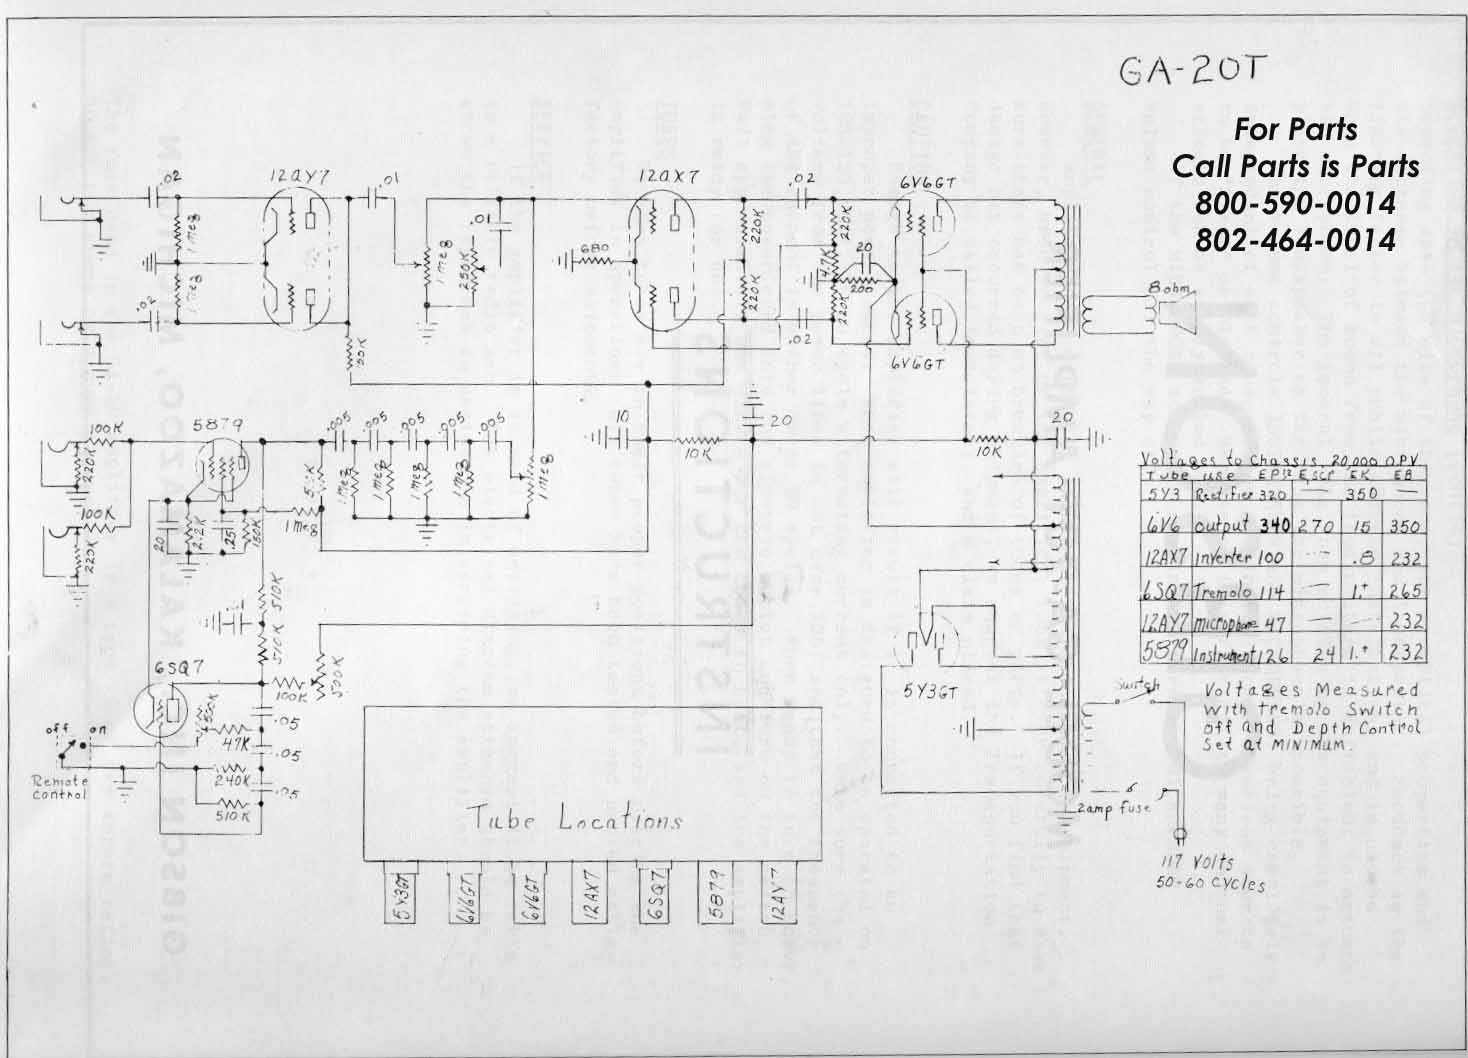 gibson 1957 wiring diagram   26 wiring diagram images